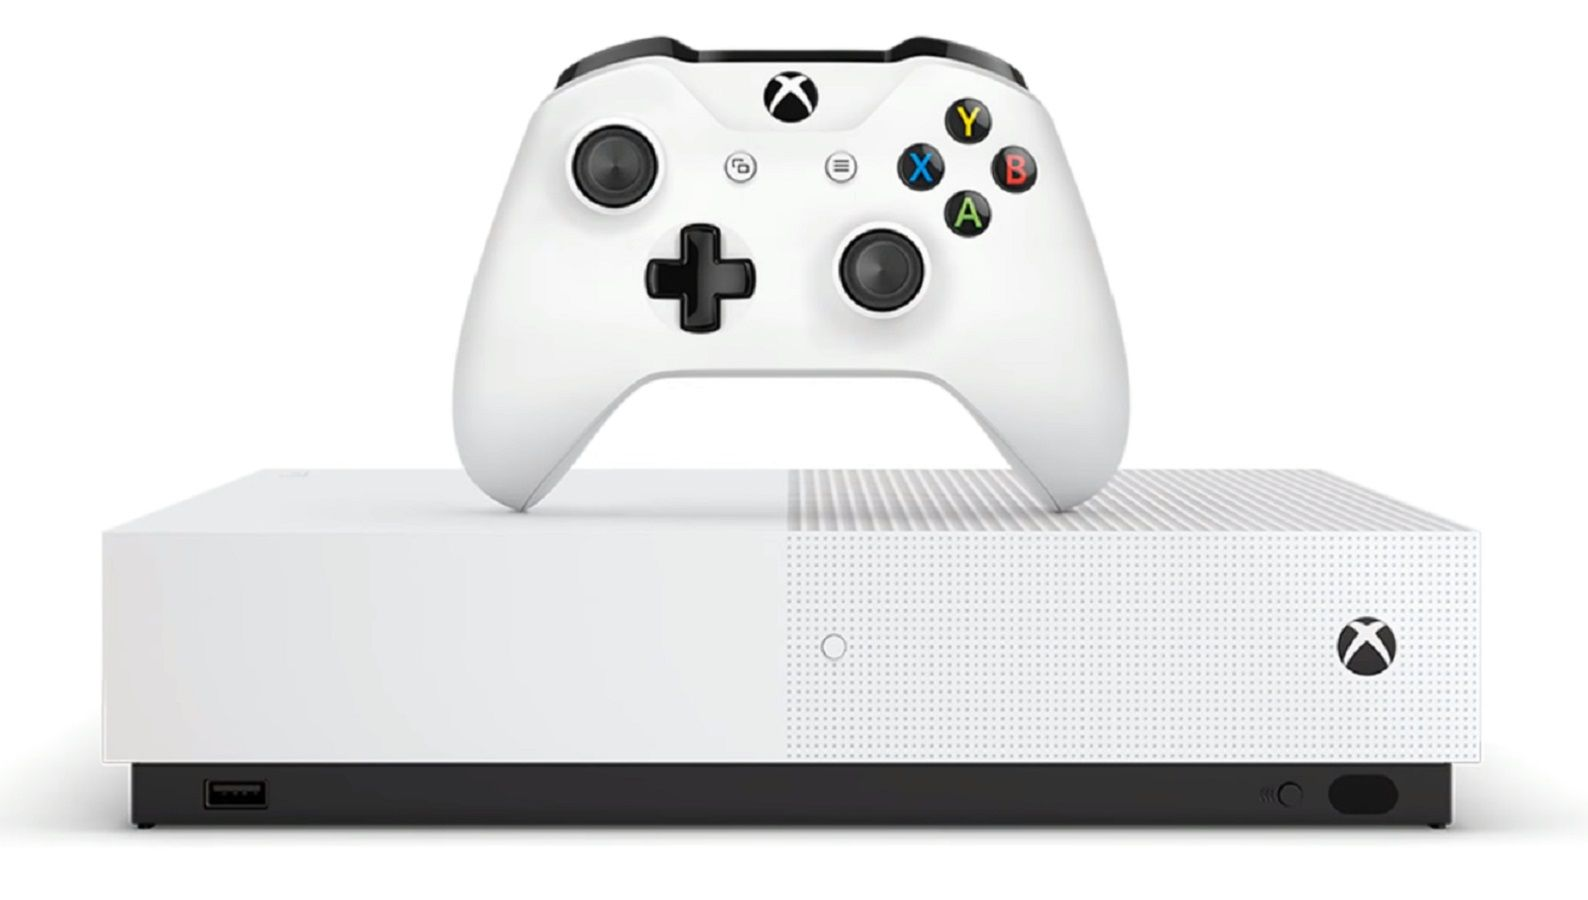 a40c51dd06625323c0ac0c00d43ebee8 - How To Get Disc Out Of Xbox One S